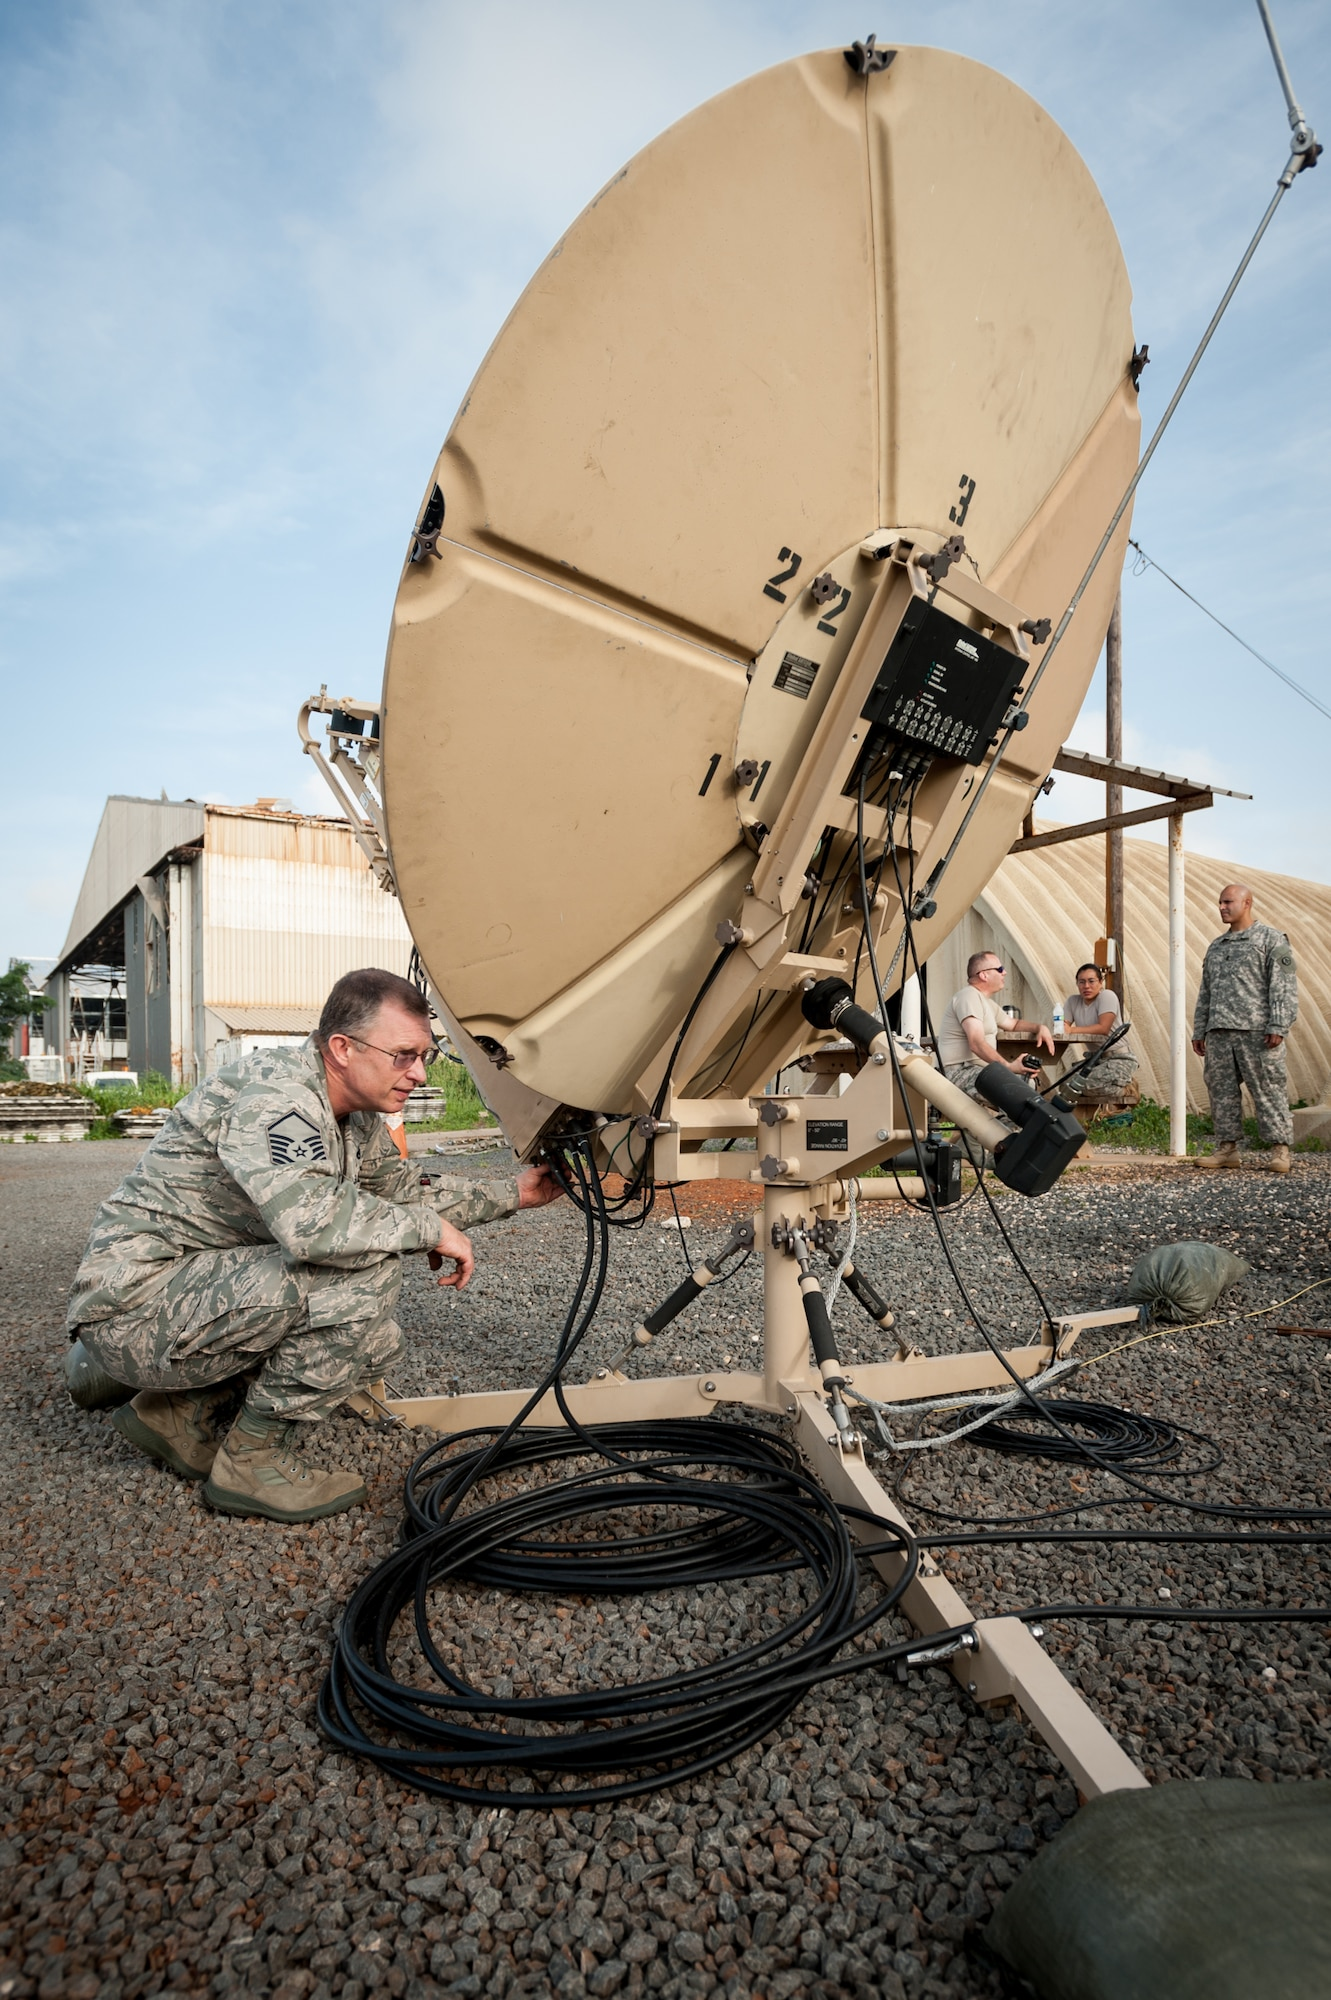 Master Sgt. Paul Edwards establishes satellite communications for the joint operations center Oct. 5, 2014, at Léopold Sédar Senghor International Airport in Dakar, Senegal, in support of Operation United Assistance. More than 80 Airmen from the Kentucky Air National Guard stood up an intermediate staging base at the airport that will funnel humanitarian supplies and equipment into West Africa as part of the international effort to fight Ebola. Edwards is a member of the Kentucky ANG's 123rd Contingency Response Group. (U.S. Air National Guard photo/Maj. Dale Greer)